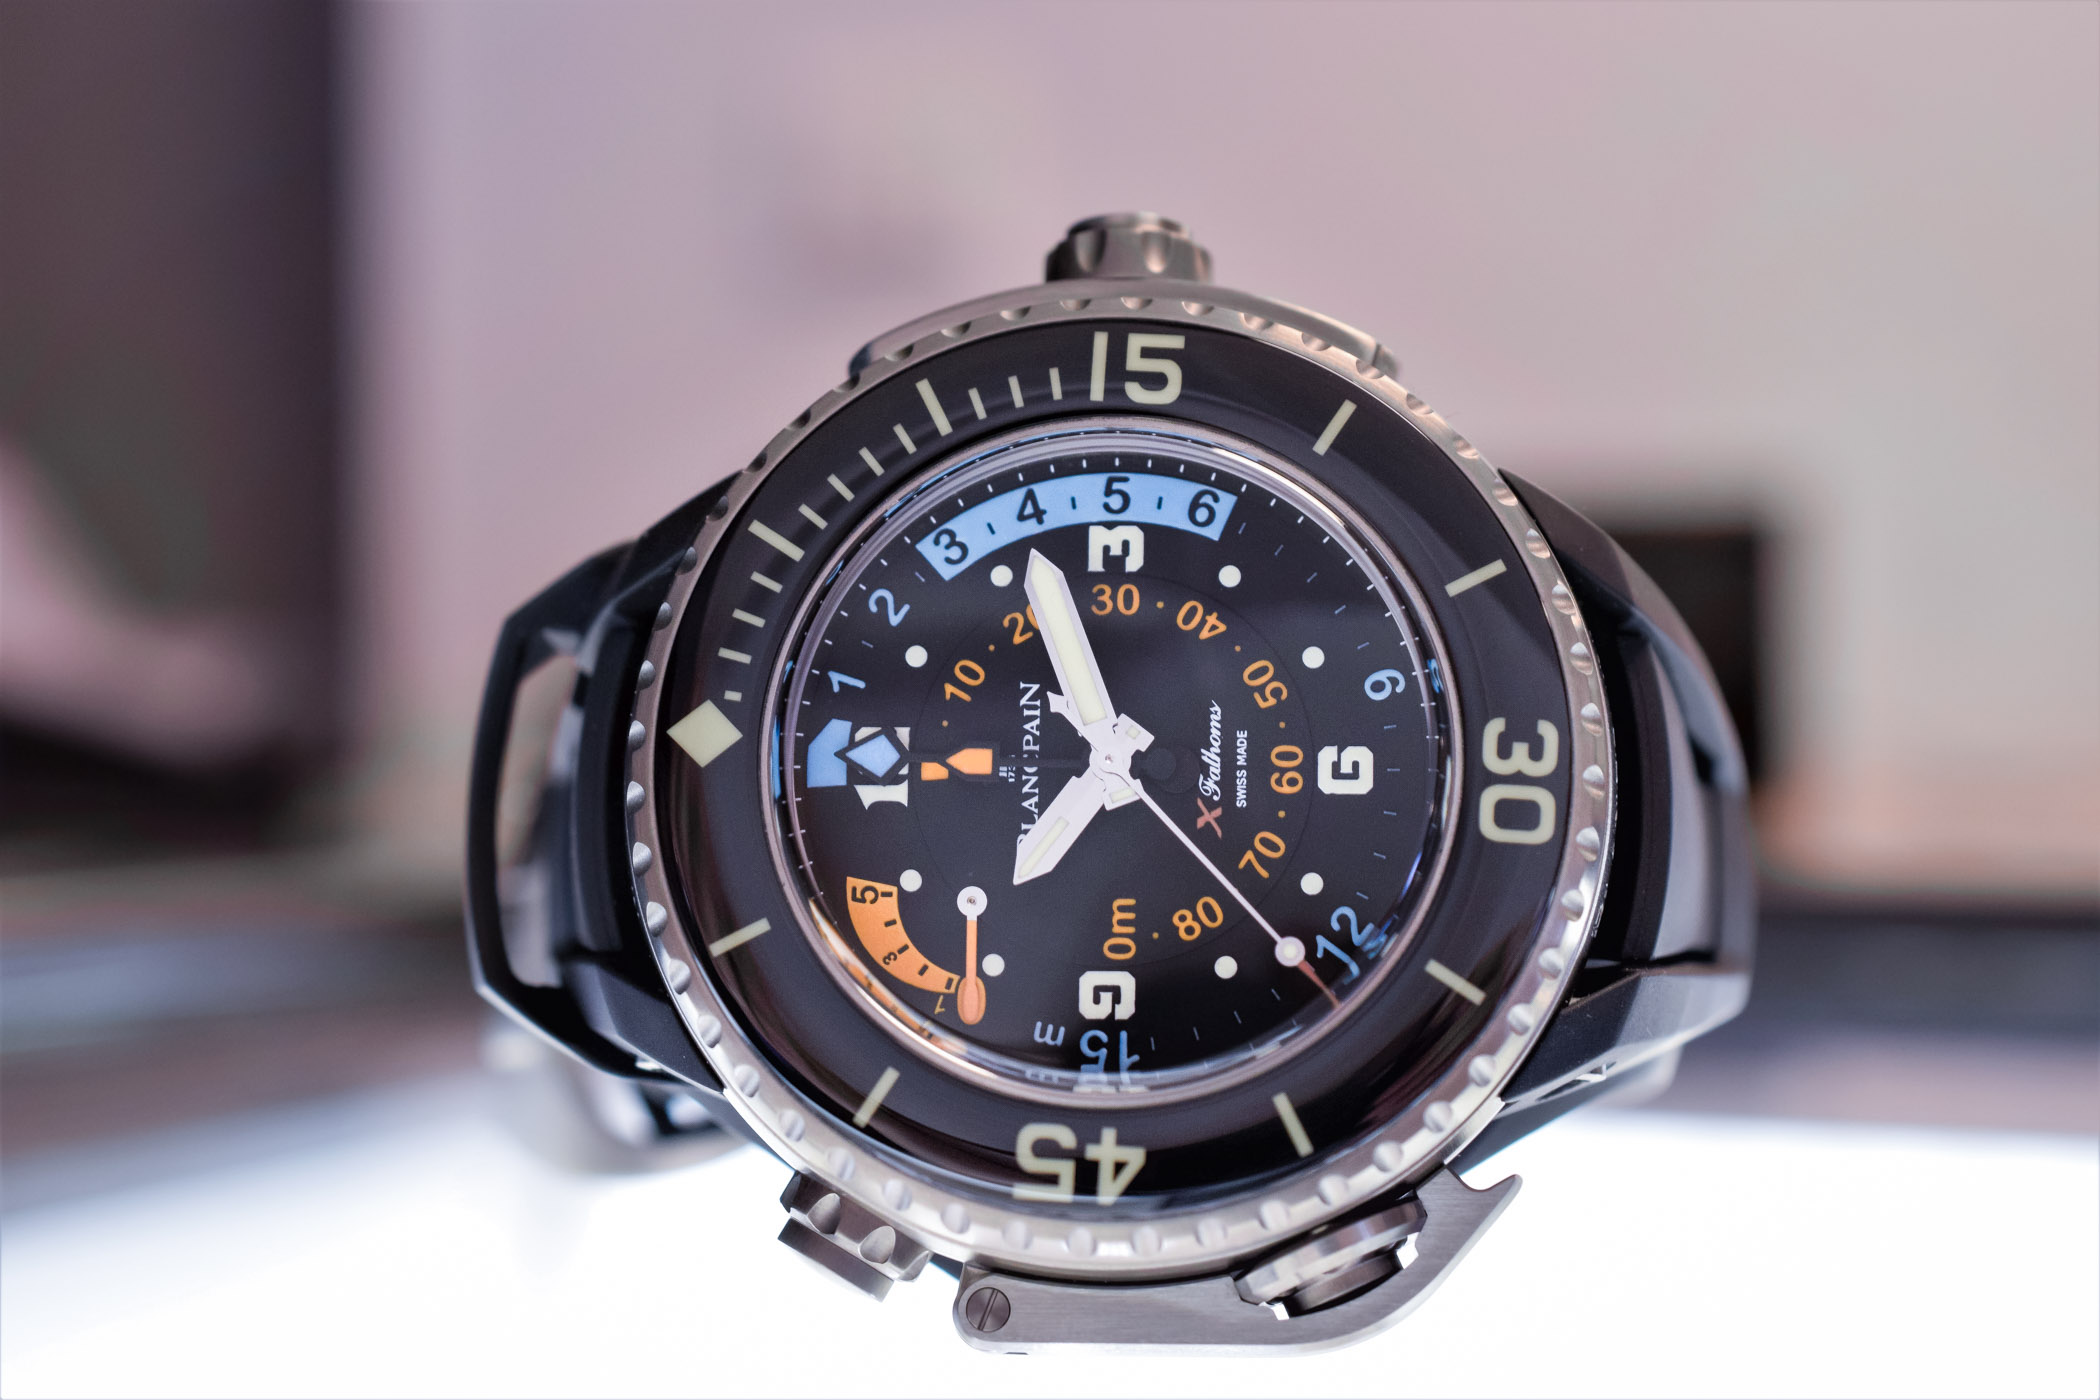 0fb0f593d57 One of the most extreme dive watches on the market